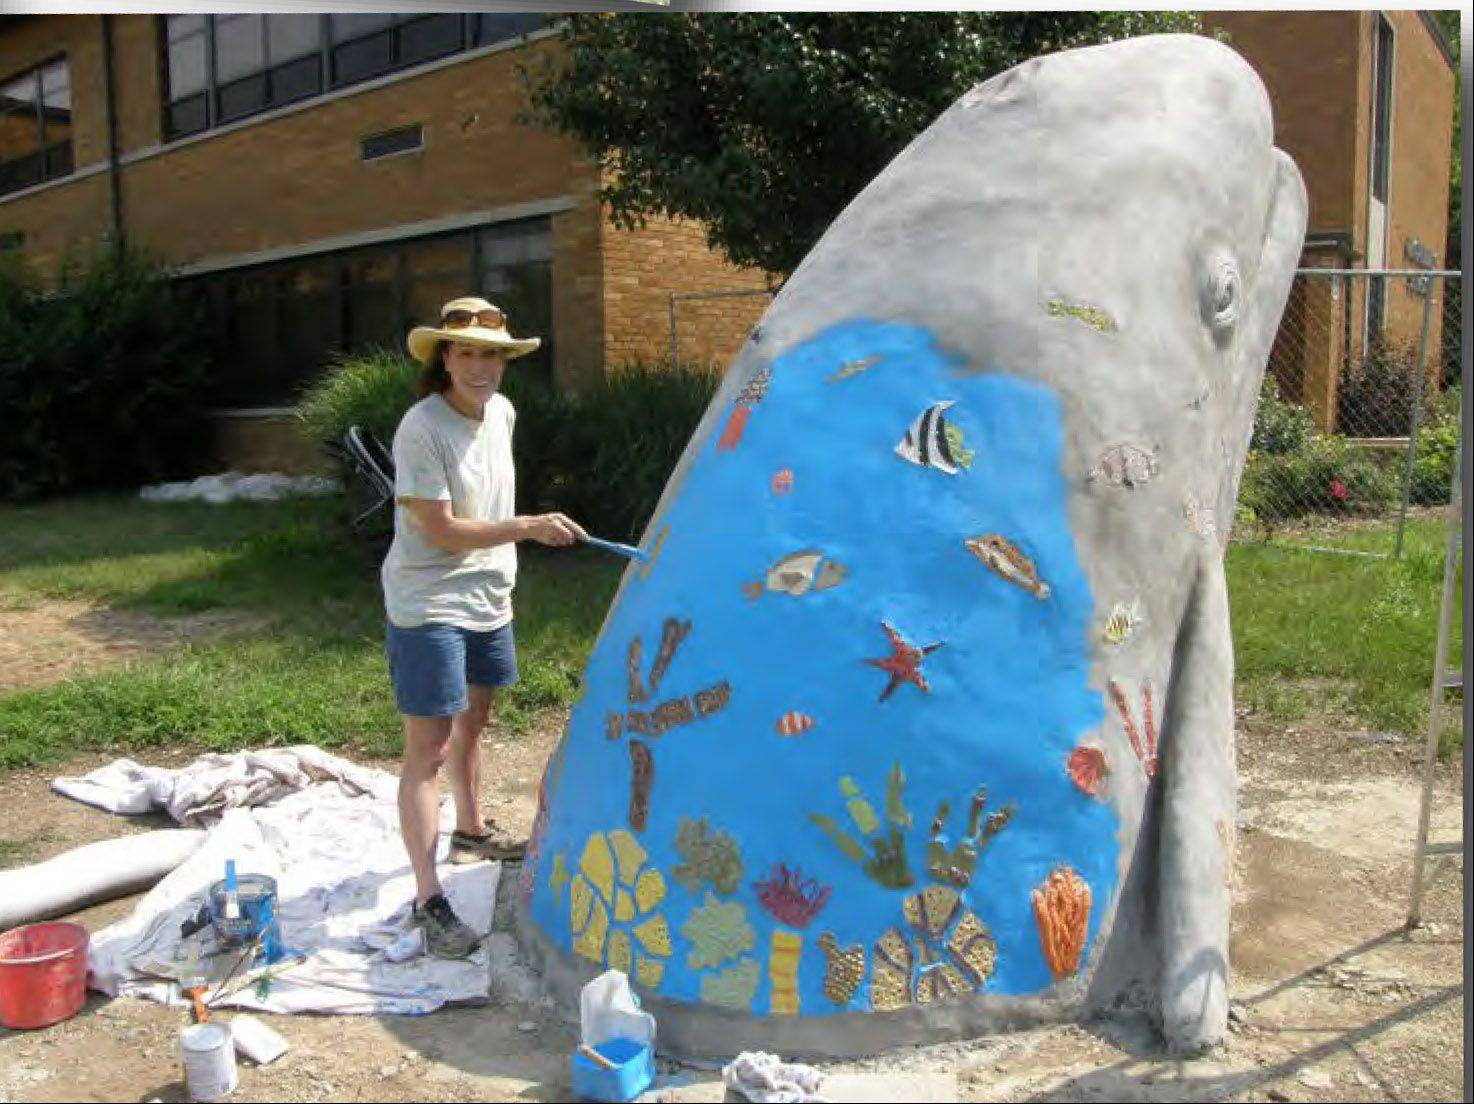 Artist Victoria Fuller incorporated several fish and underwater-themed tiles, made by students, into her whale sculpture outside Naperville's Highlands Elementary School.